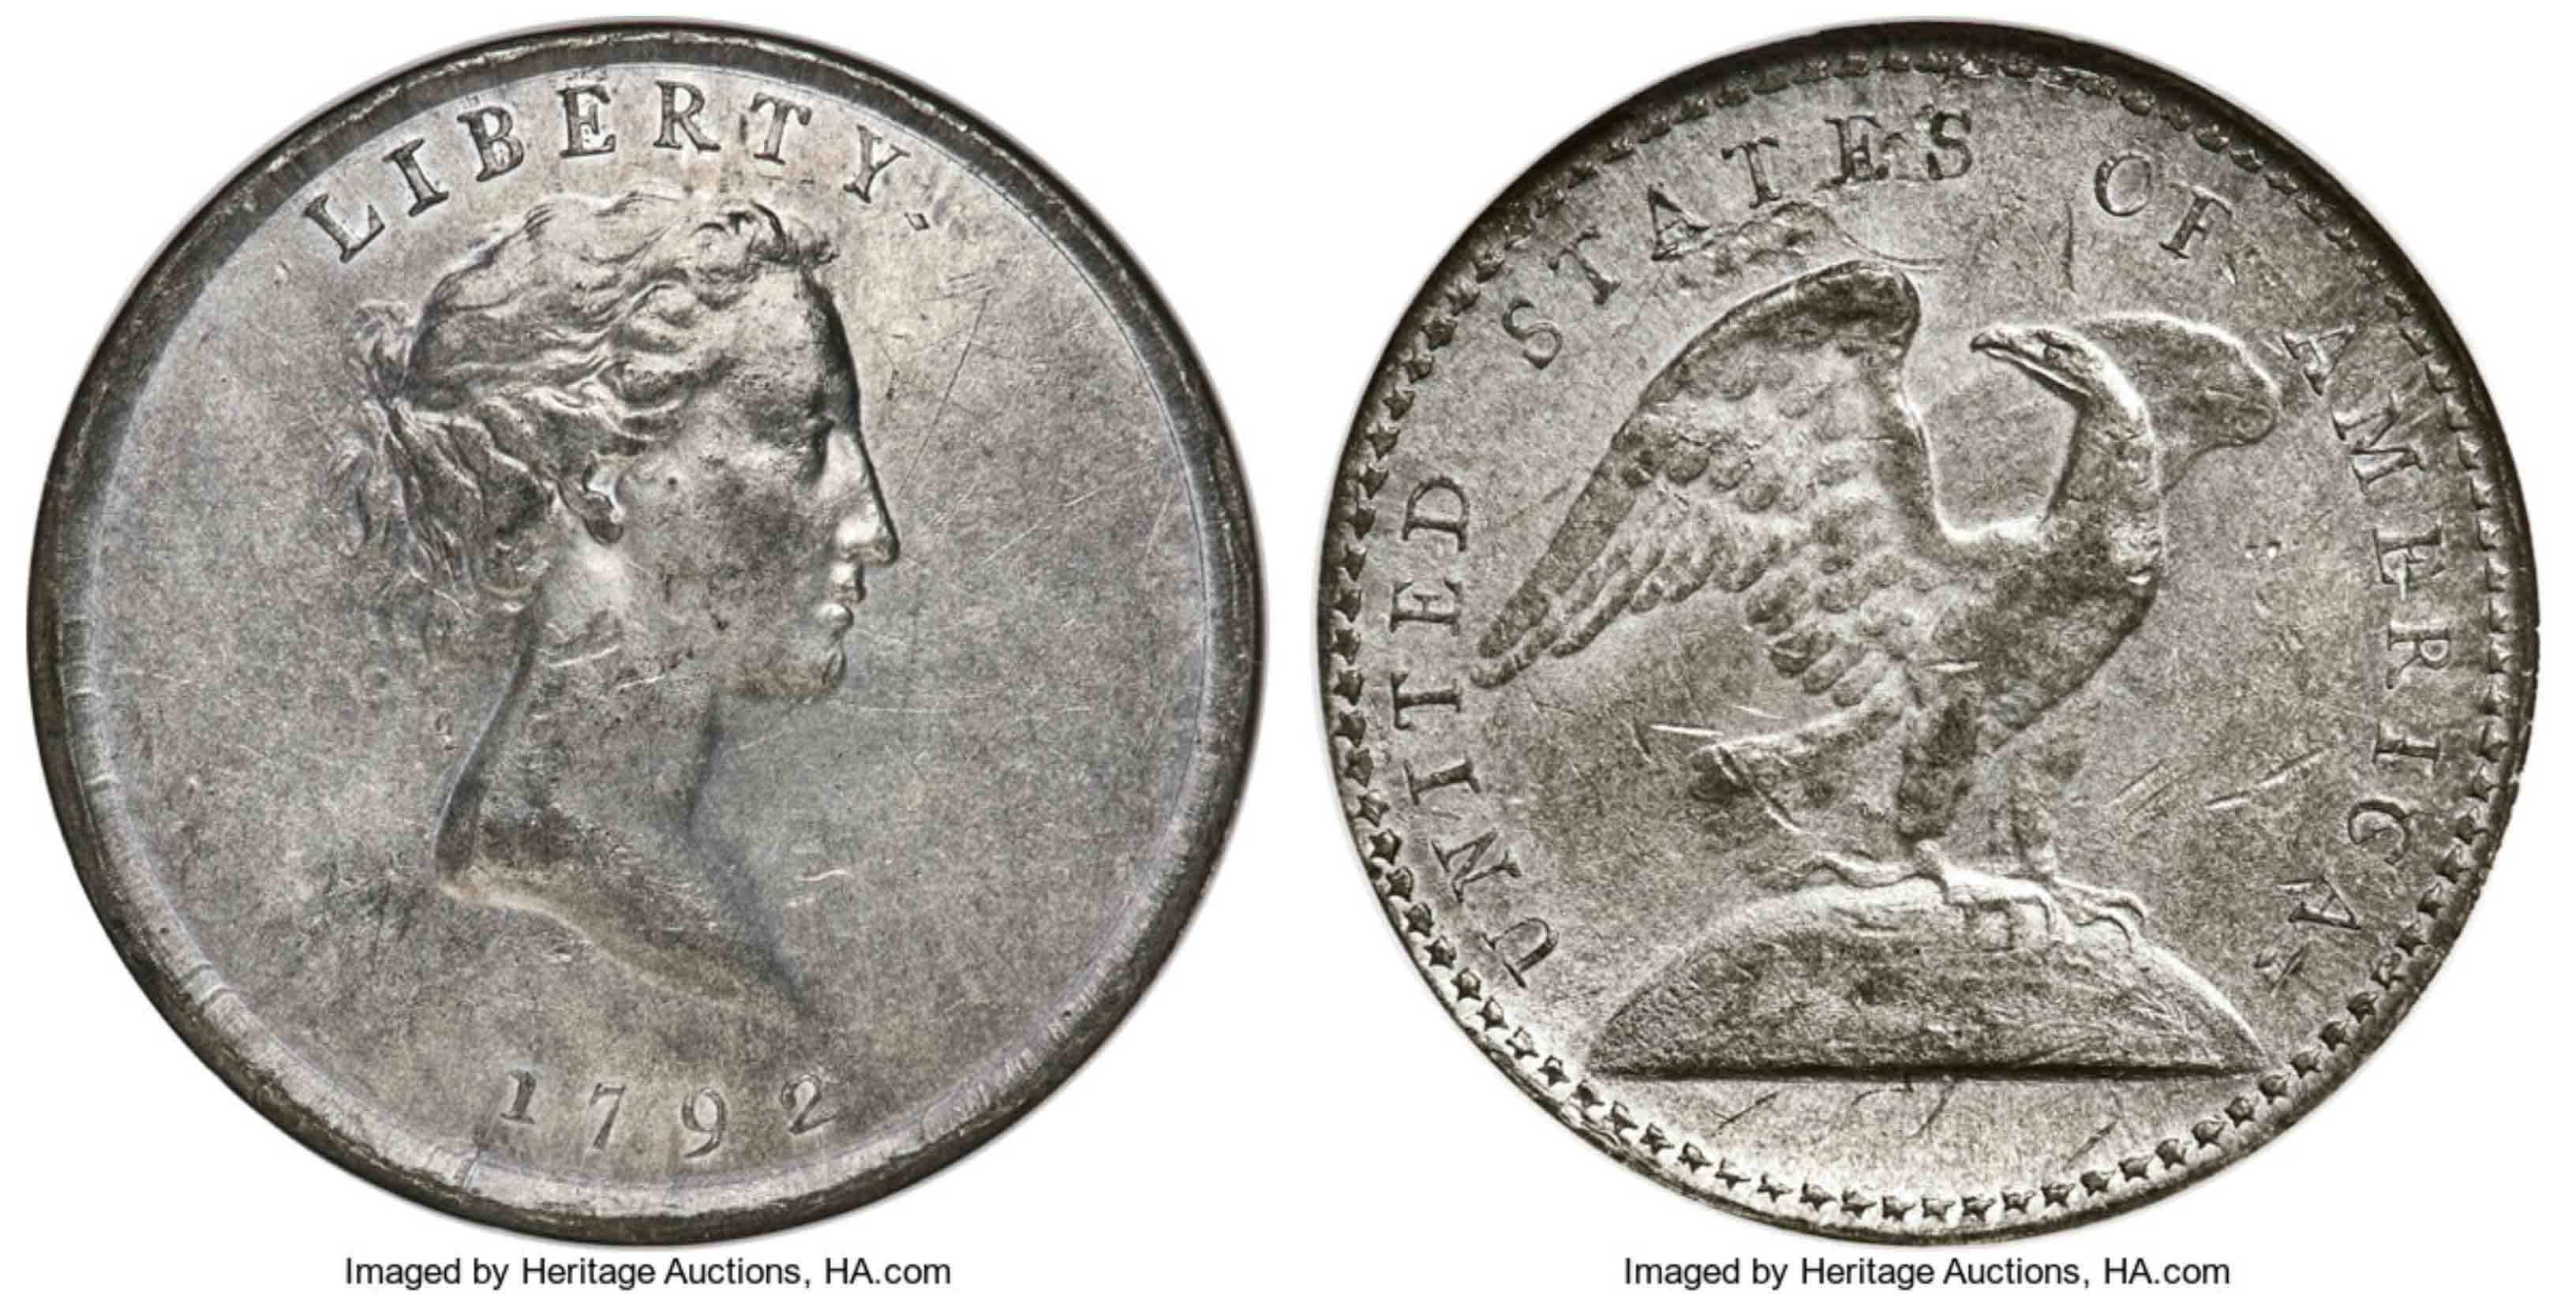 thumbnail image for Historic 1792 Judd-13 Pattern to Appear at Heritage Auctions